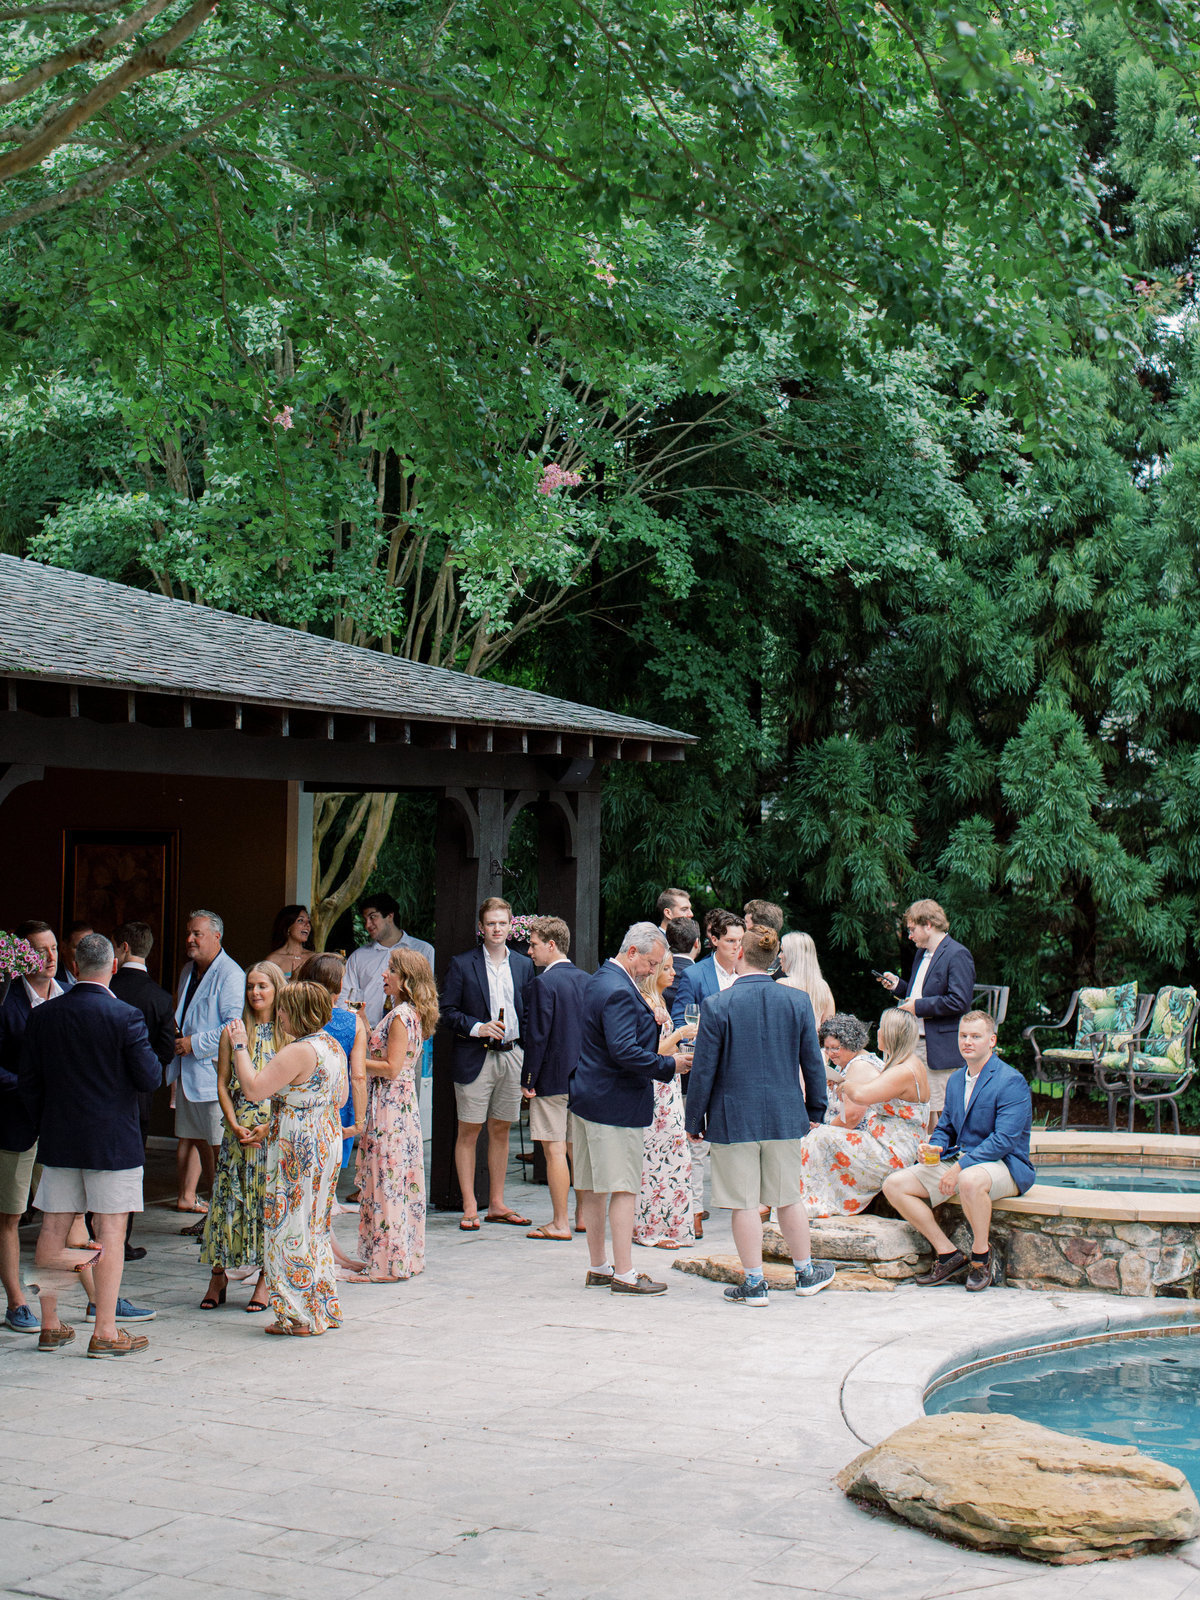 2019-06-08Carrie&MikeWedding-302